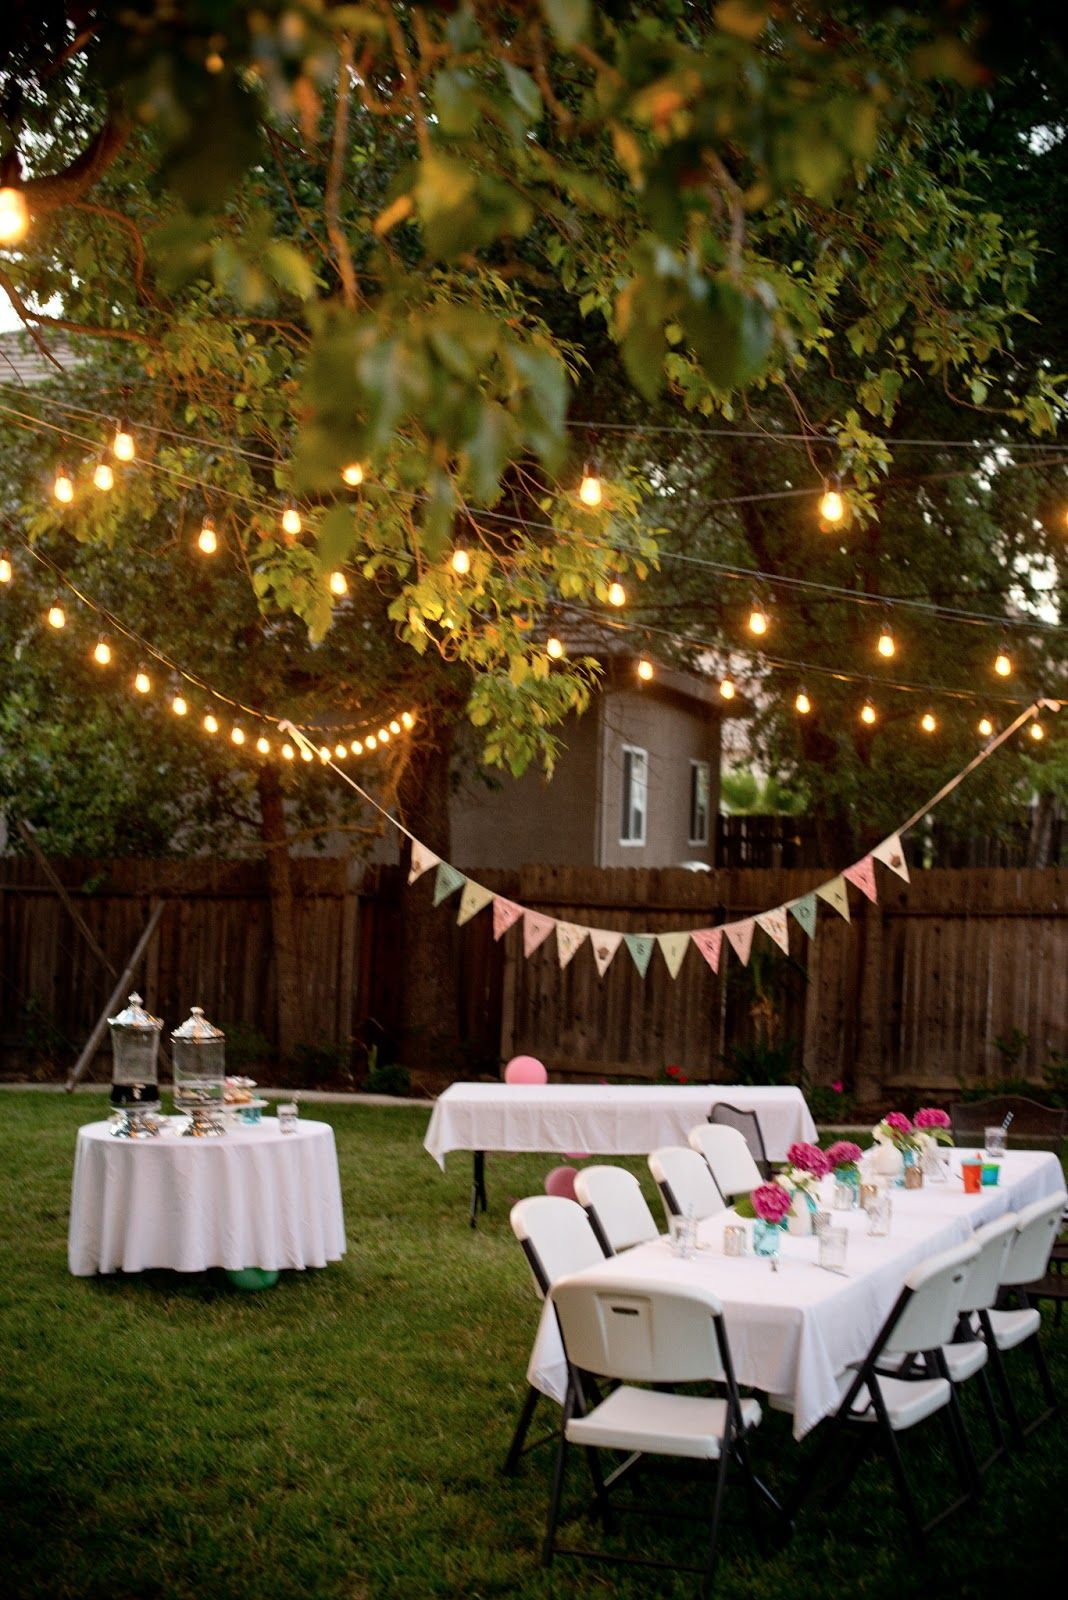 Backyard Birthday Fun  Pink Hydrangeas   Polka Dot Napkins     It looks so inviting  backyard party   Google Search